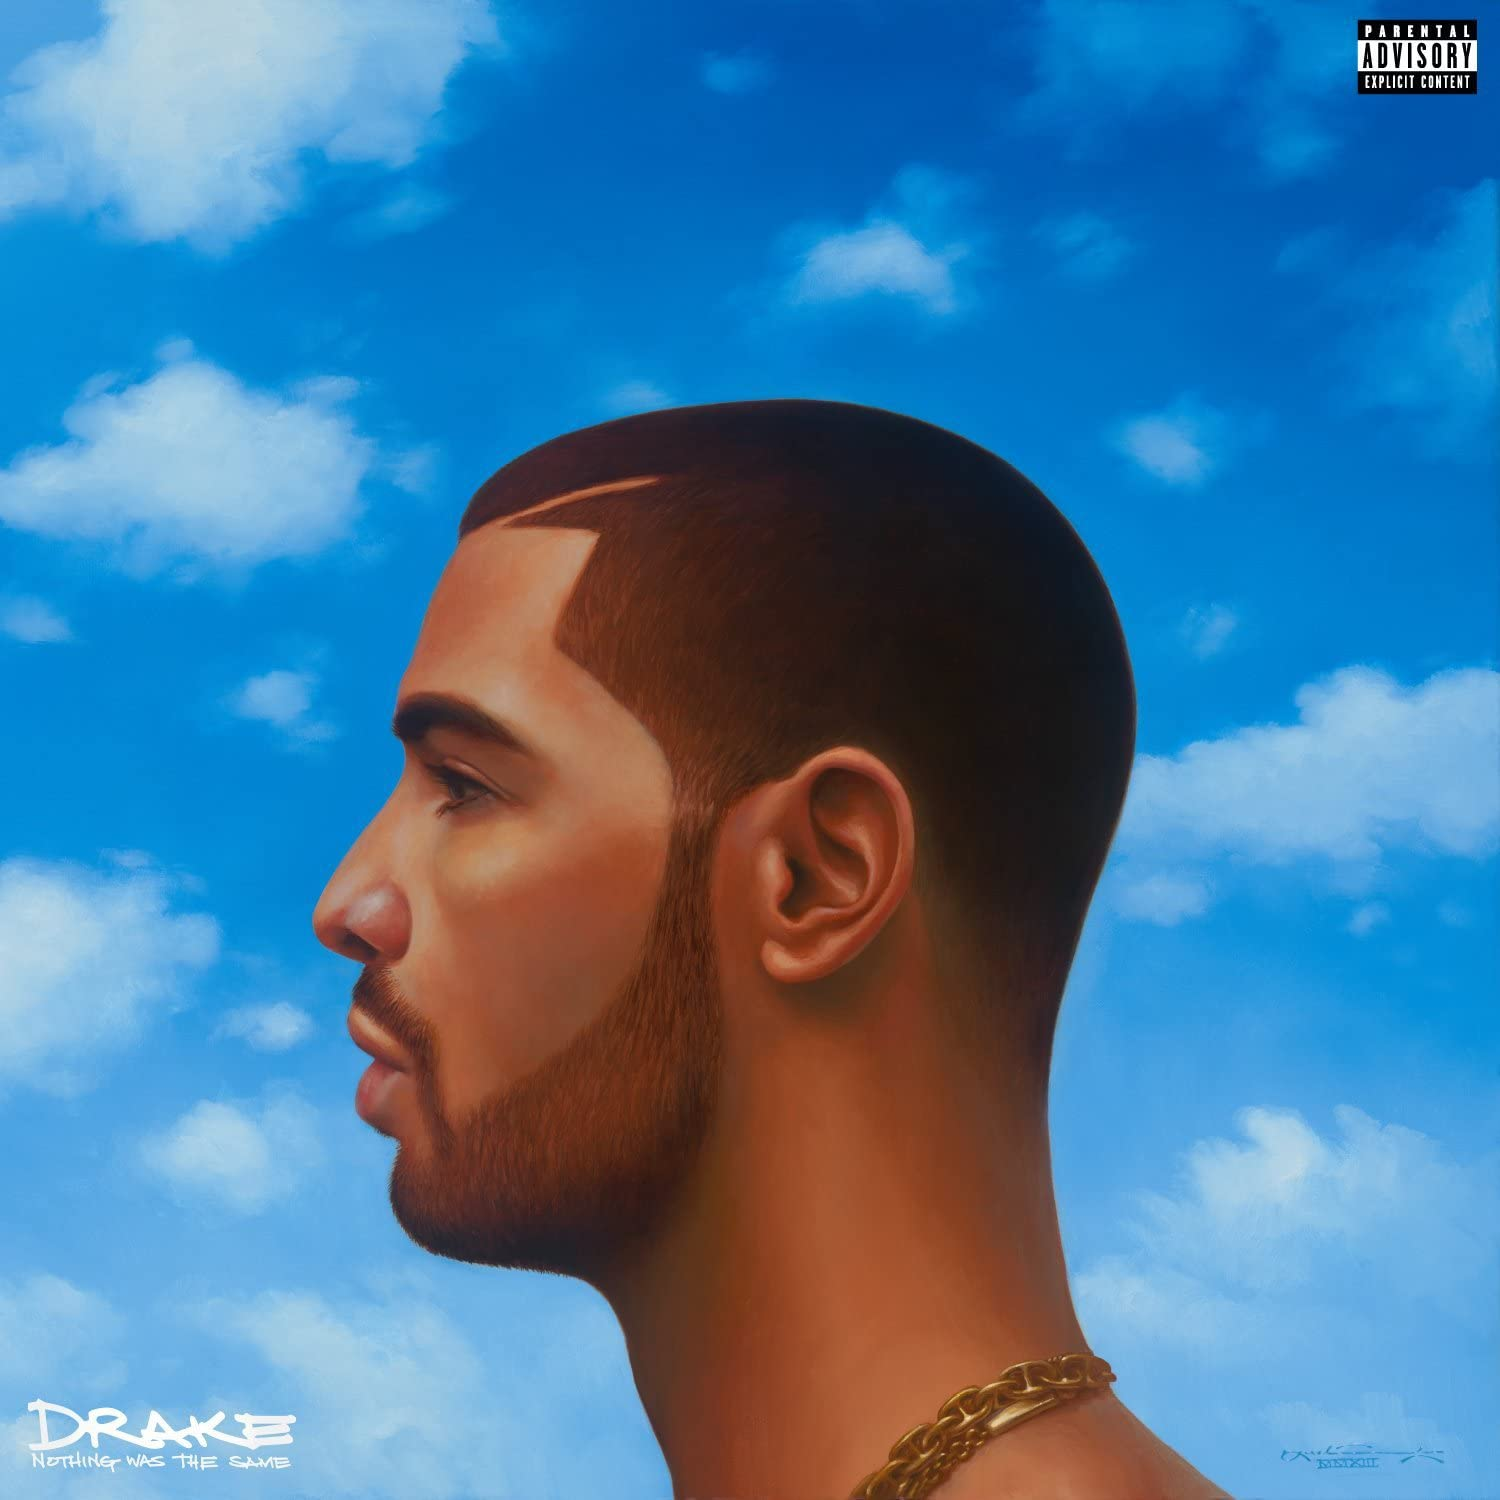 「Drake / Nothing Was The Same」の画像検索結果